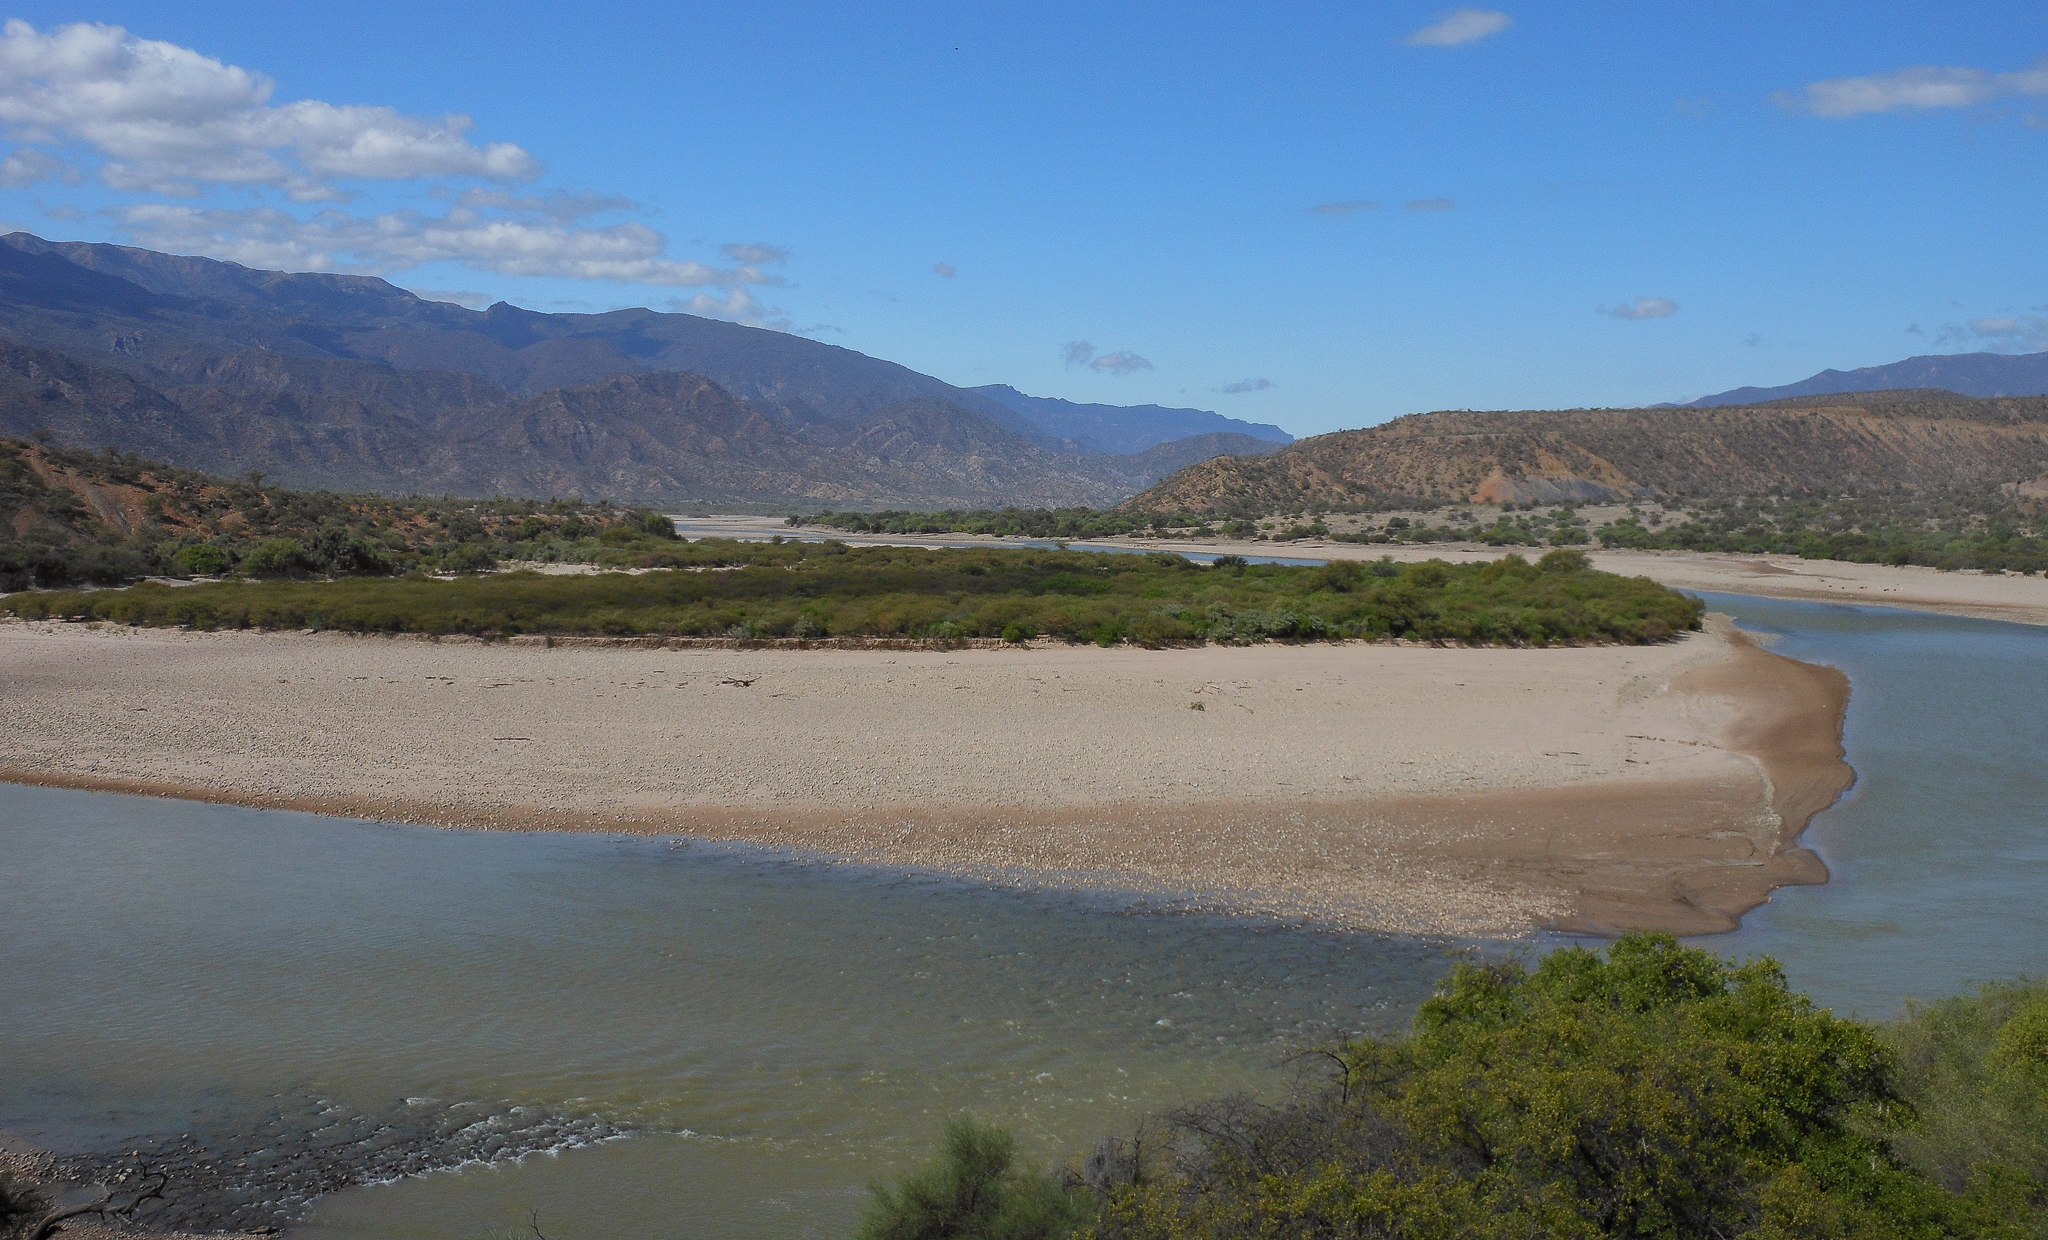 A BEND IN THE RIVER. THIS IS A VIEW ACROSS THE RIO GRANDE.